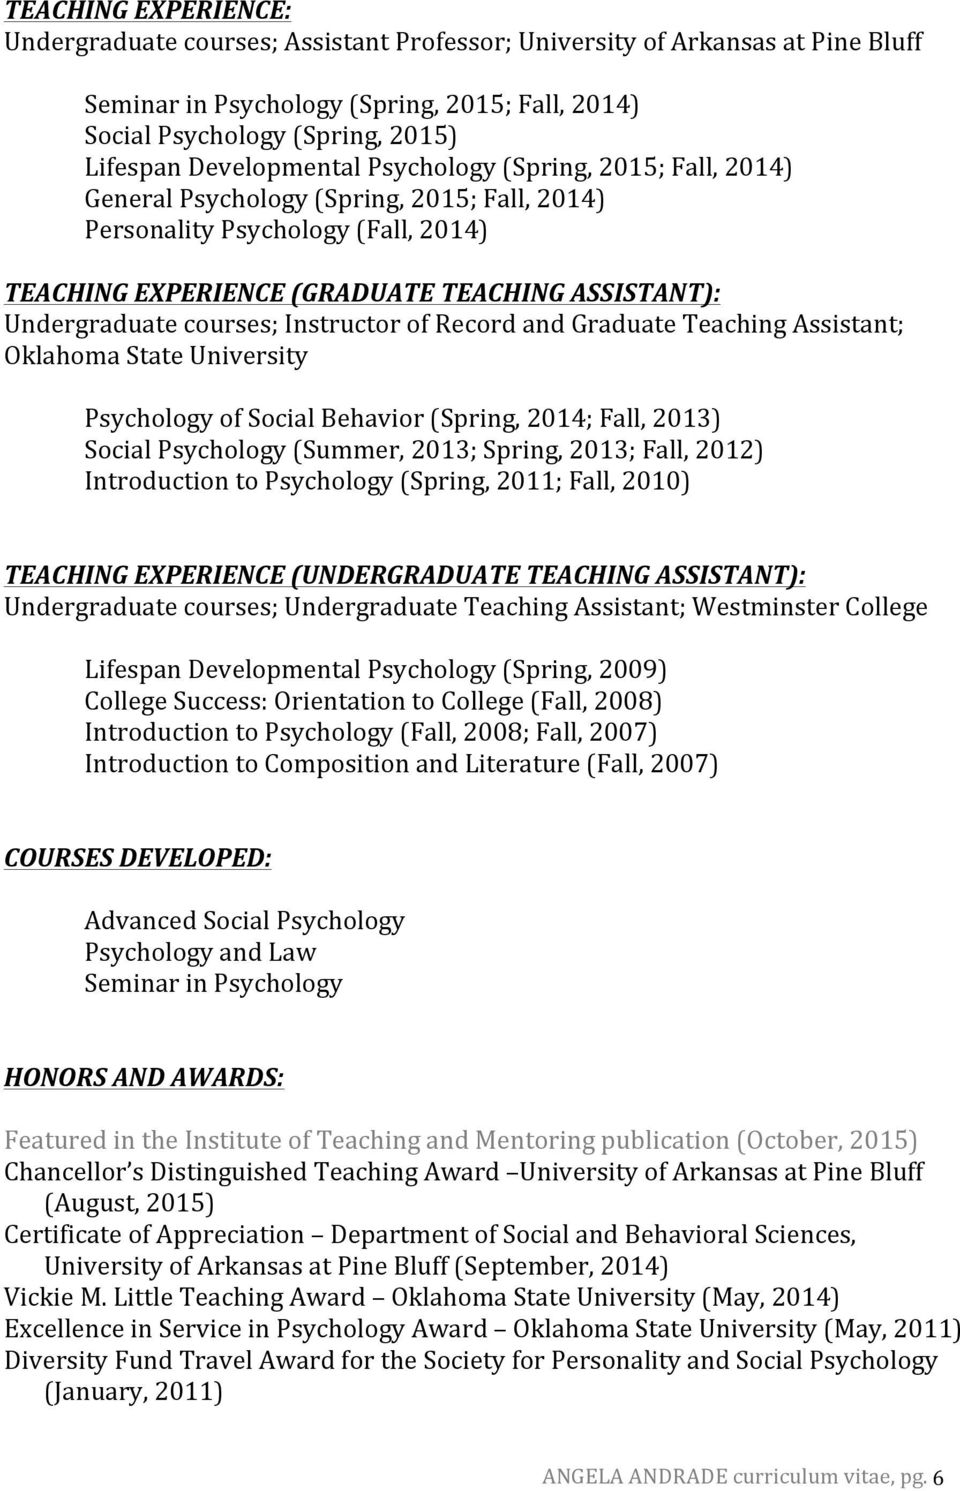 courses; Instructor of Record and Graduate Teaching Assistant; Psychology of Social Behavior (Spring, 2014; Fall, 2013) Social Psychology (Summer, 2013; Spring, 2013; Fall, 2012) Introduction to